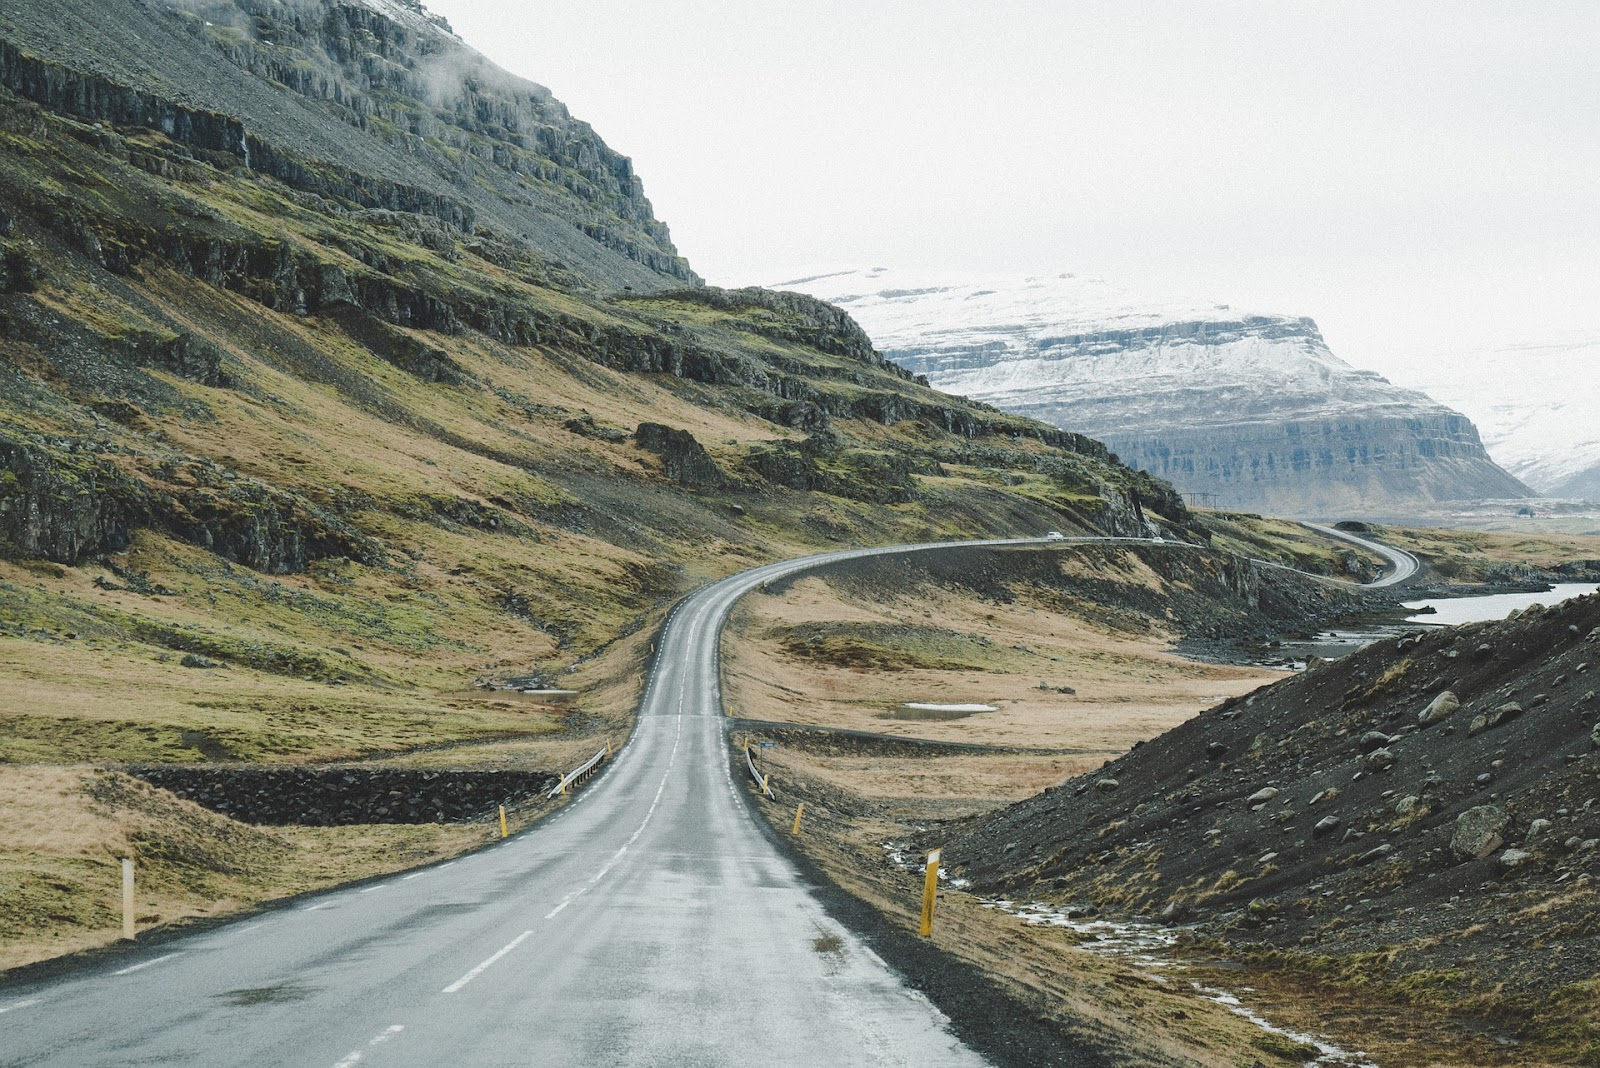 iceland ring road paved road uphill turns right and left across green fields on a wet cloudy day snow covered mountains in background